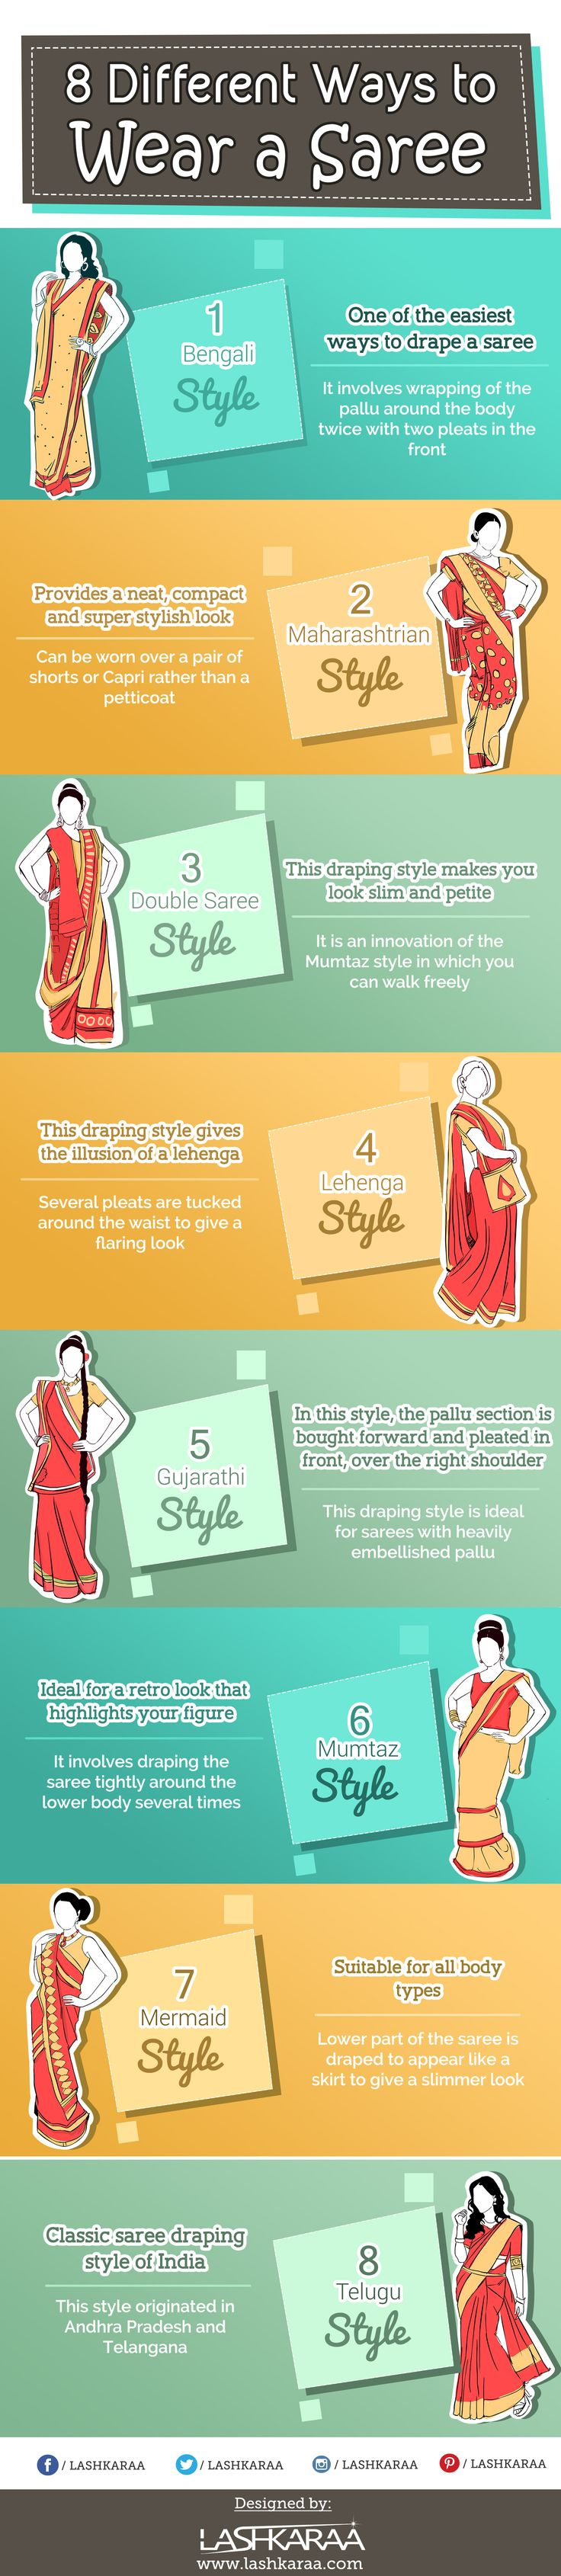 8 different ways of drapping sarees